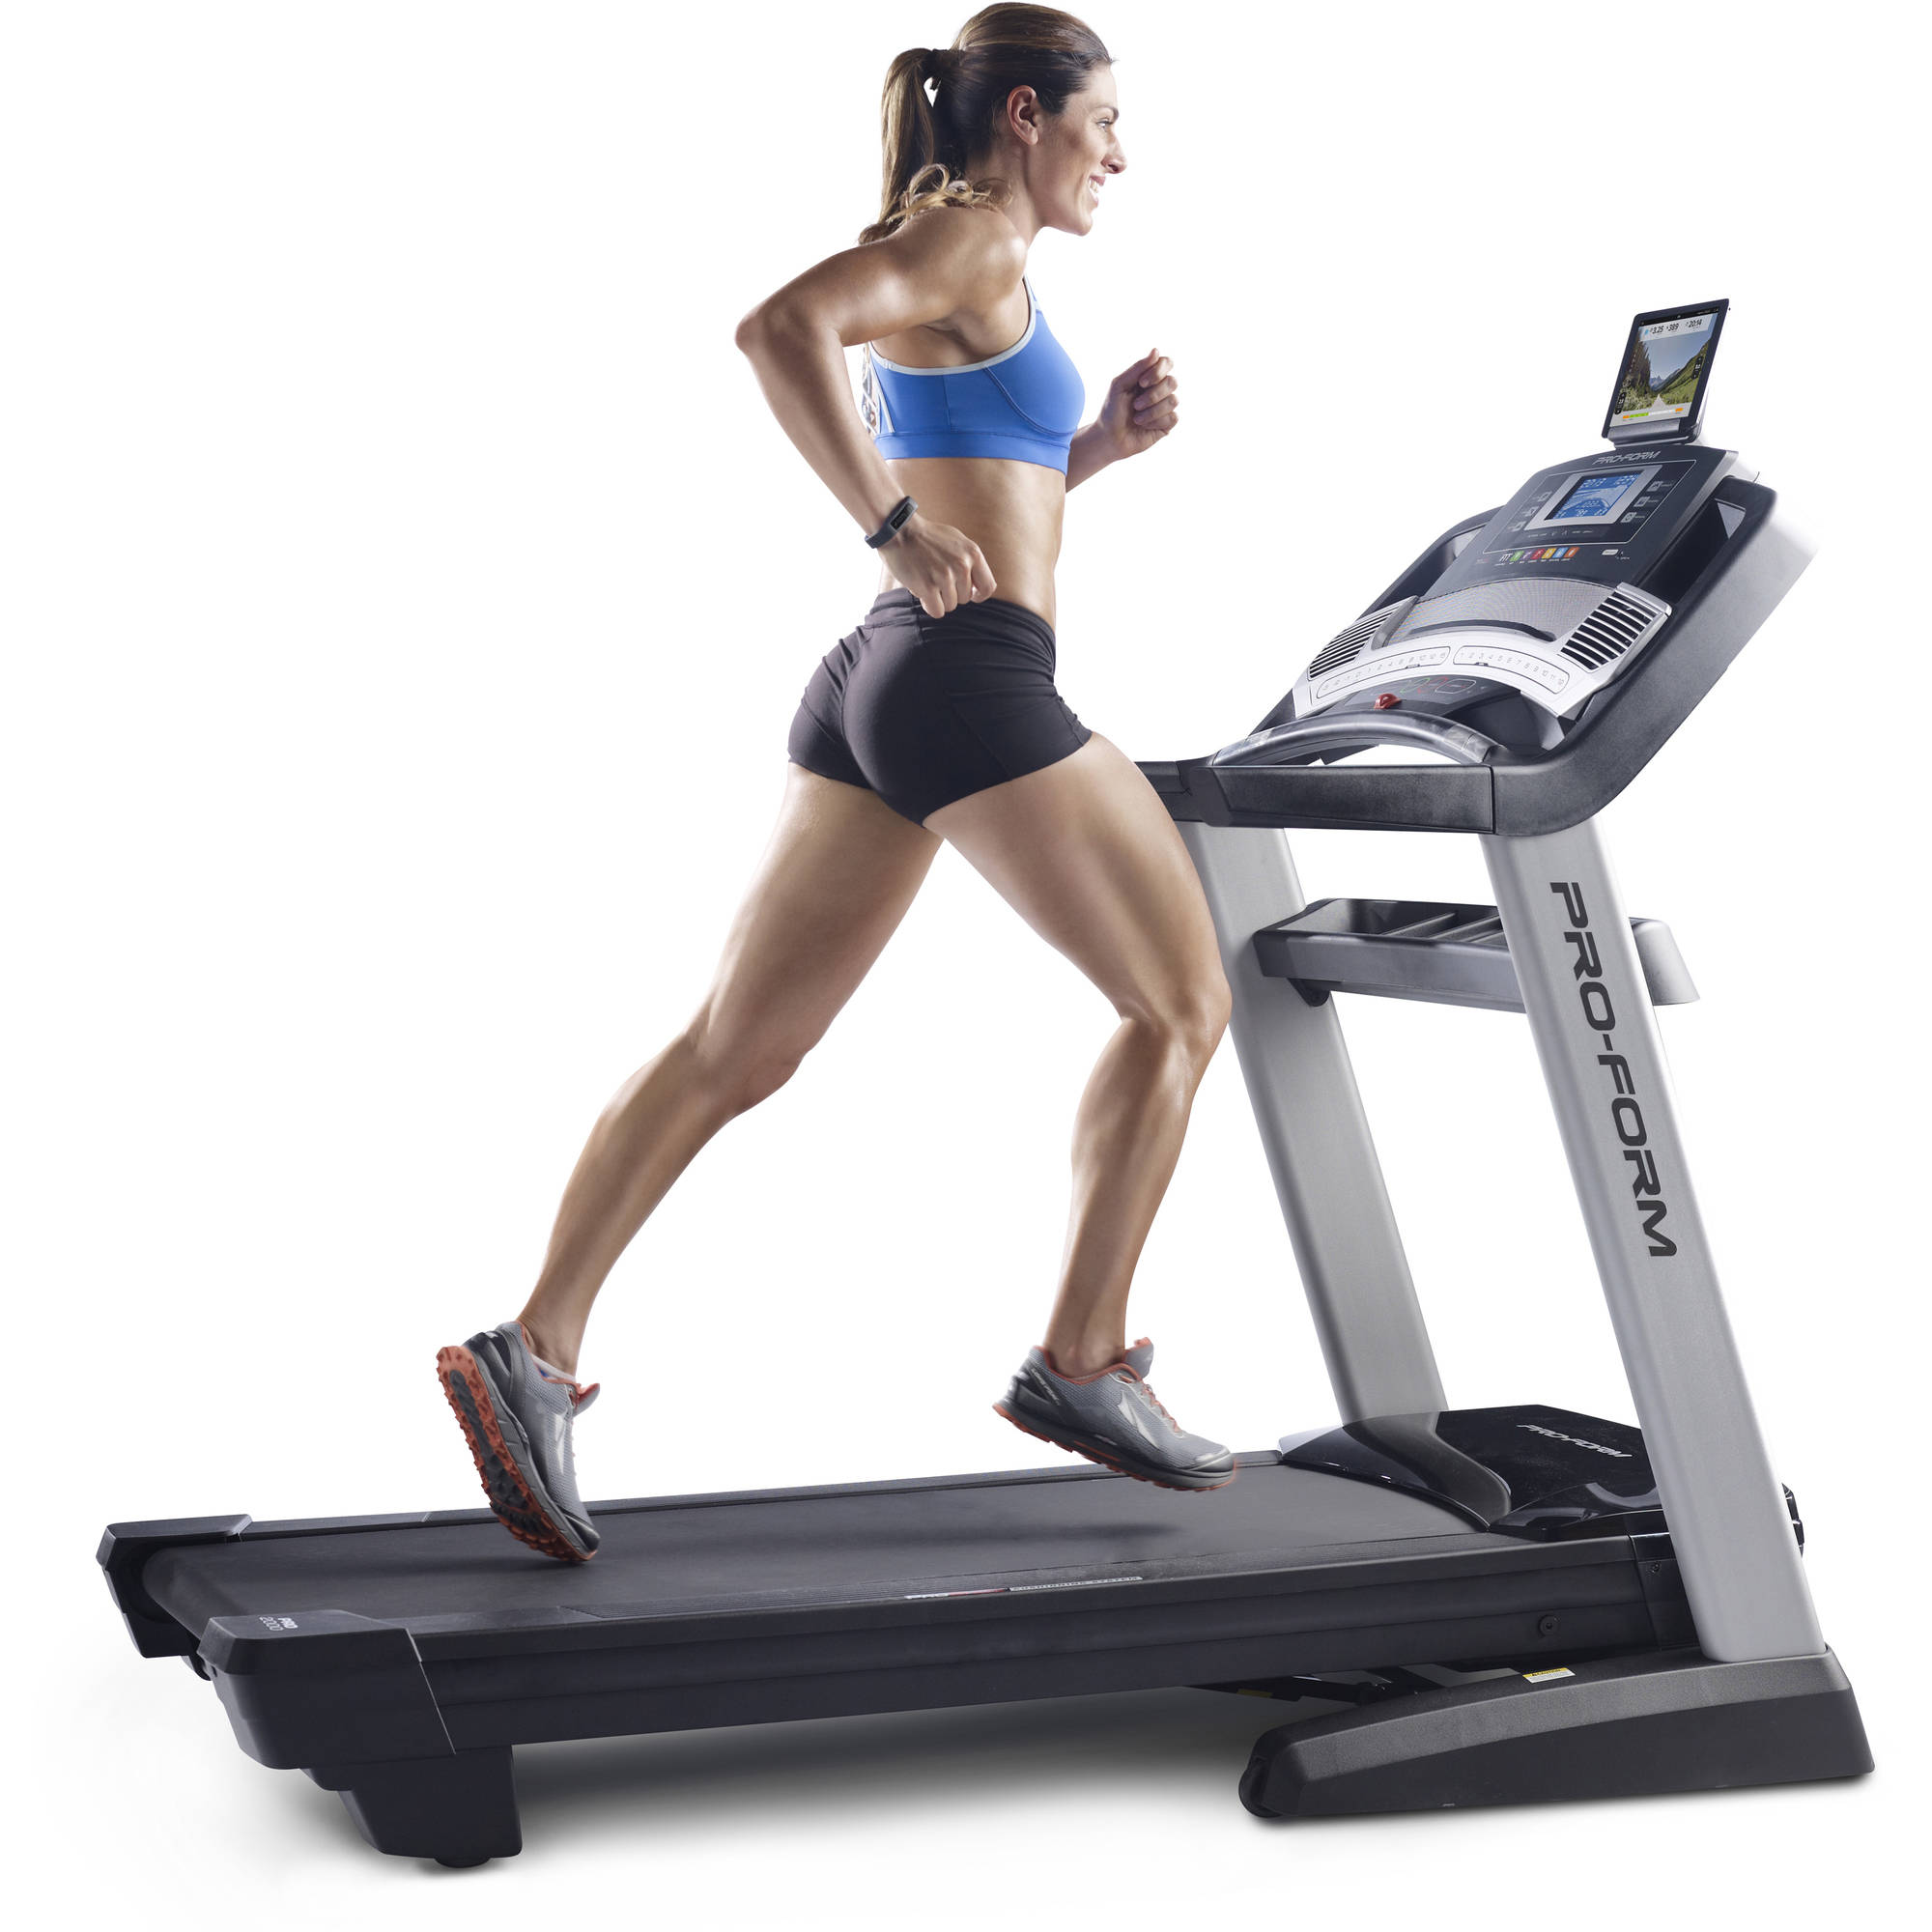 ProForm Pro 2000 Folding Treadmill with Incline, Decline, and Workout Fans